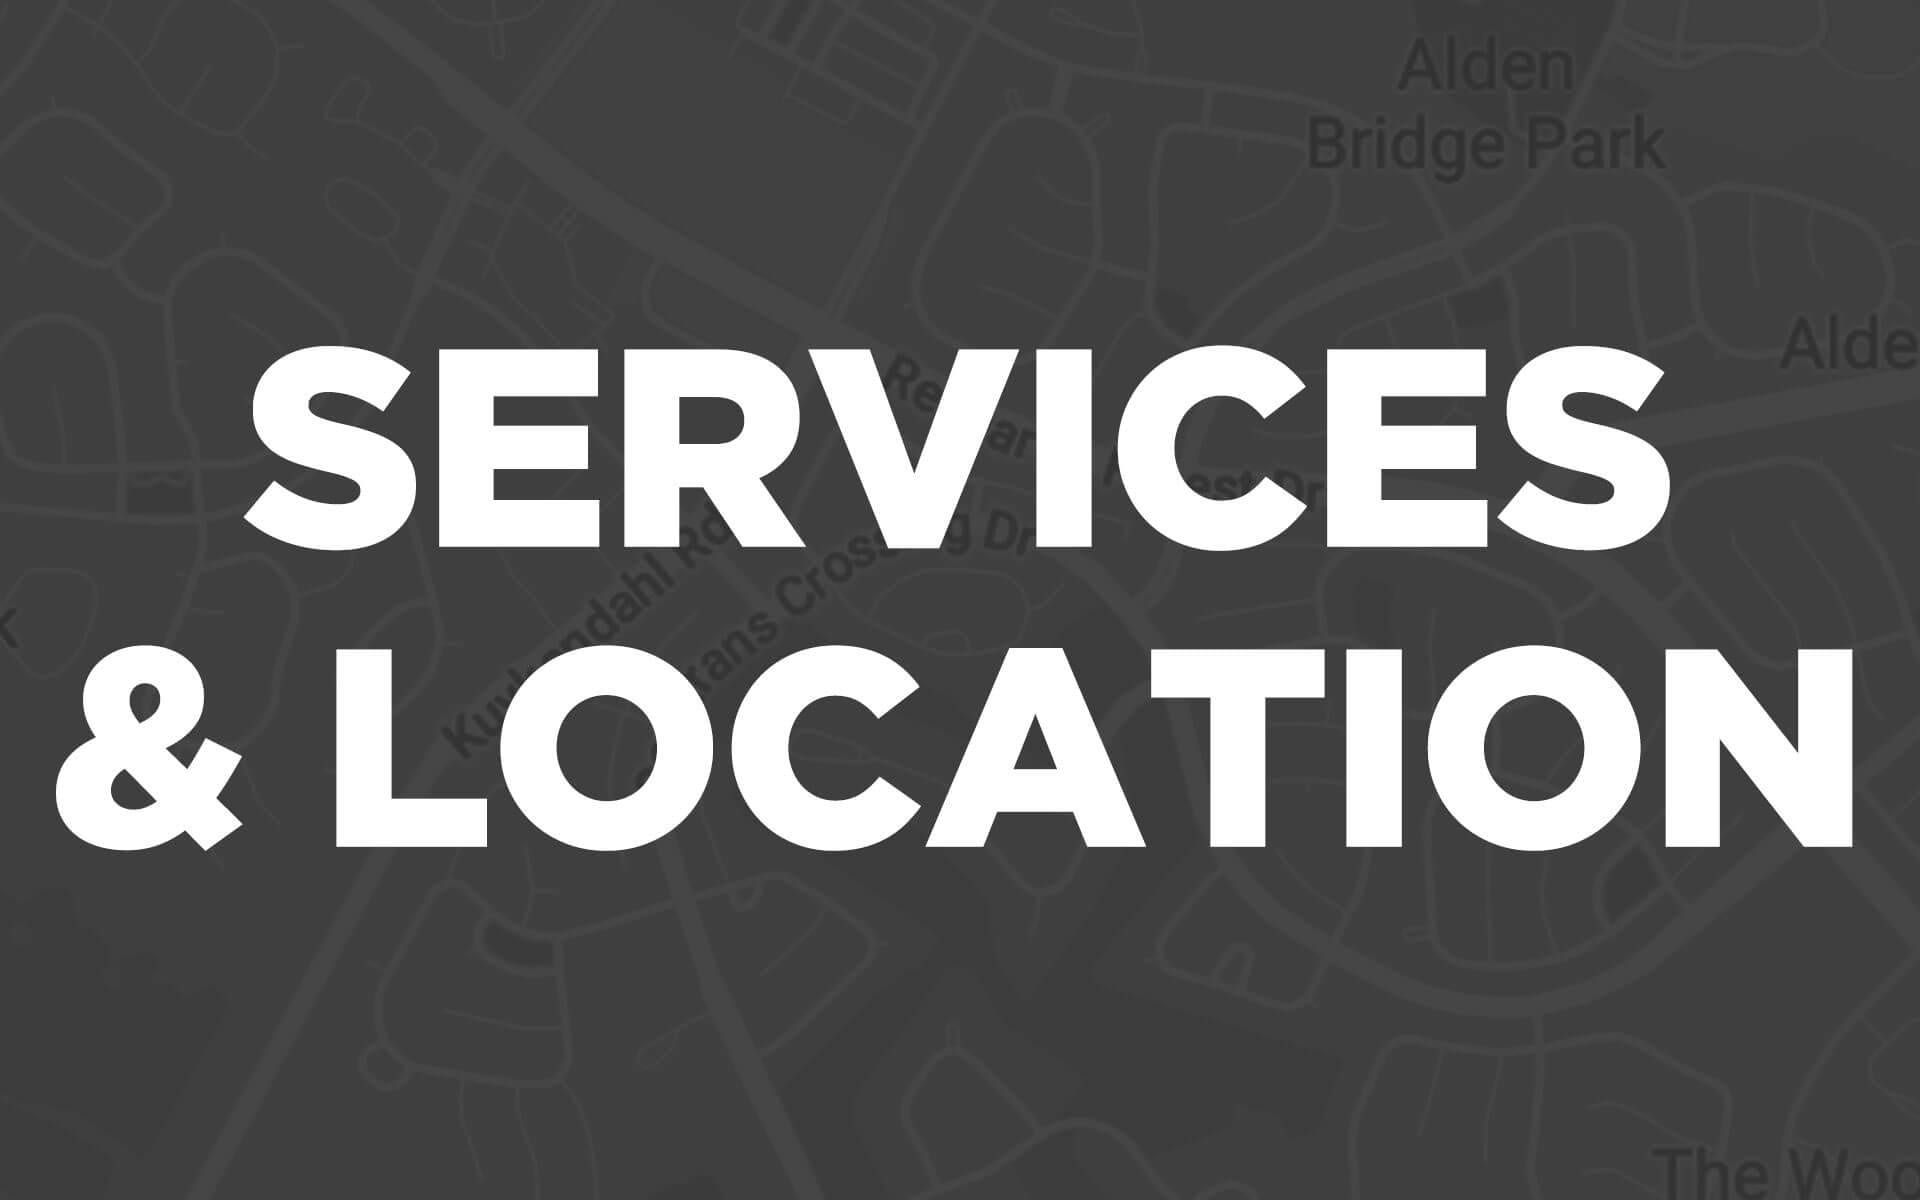 Services and Location